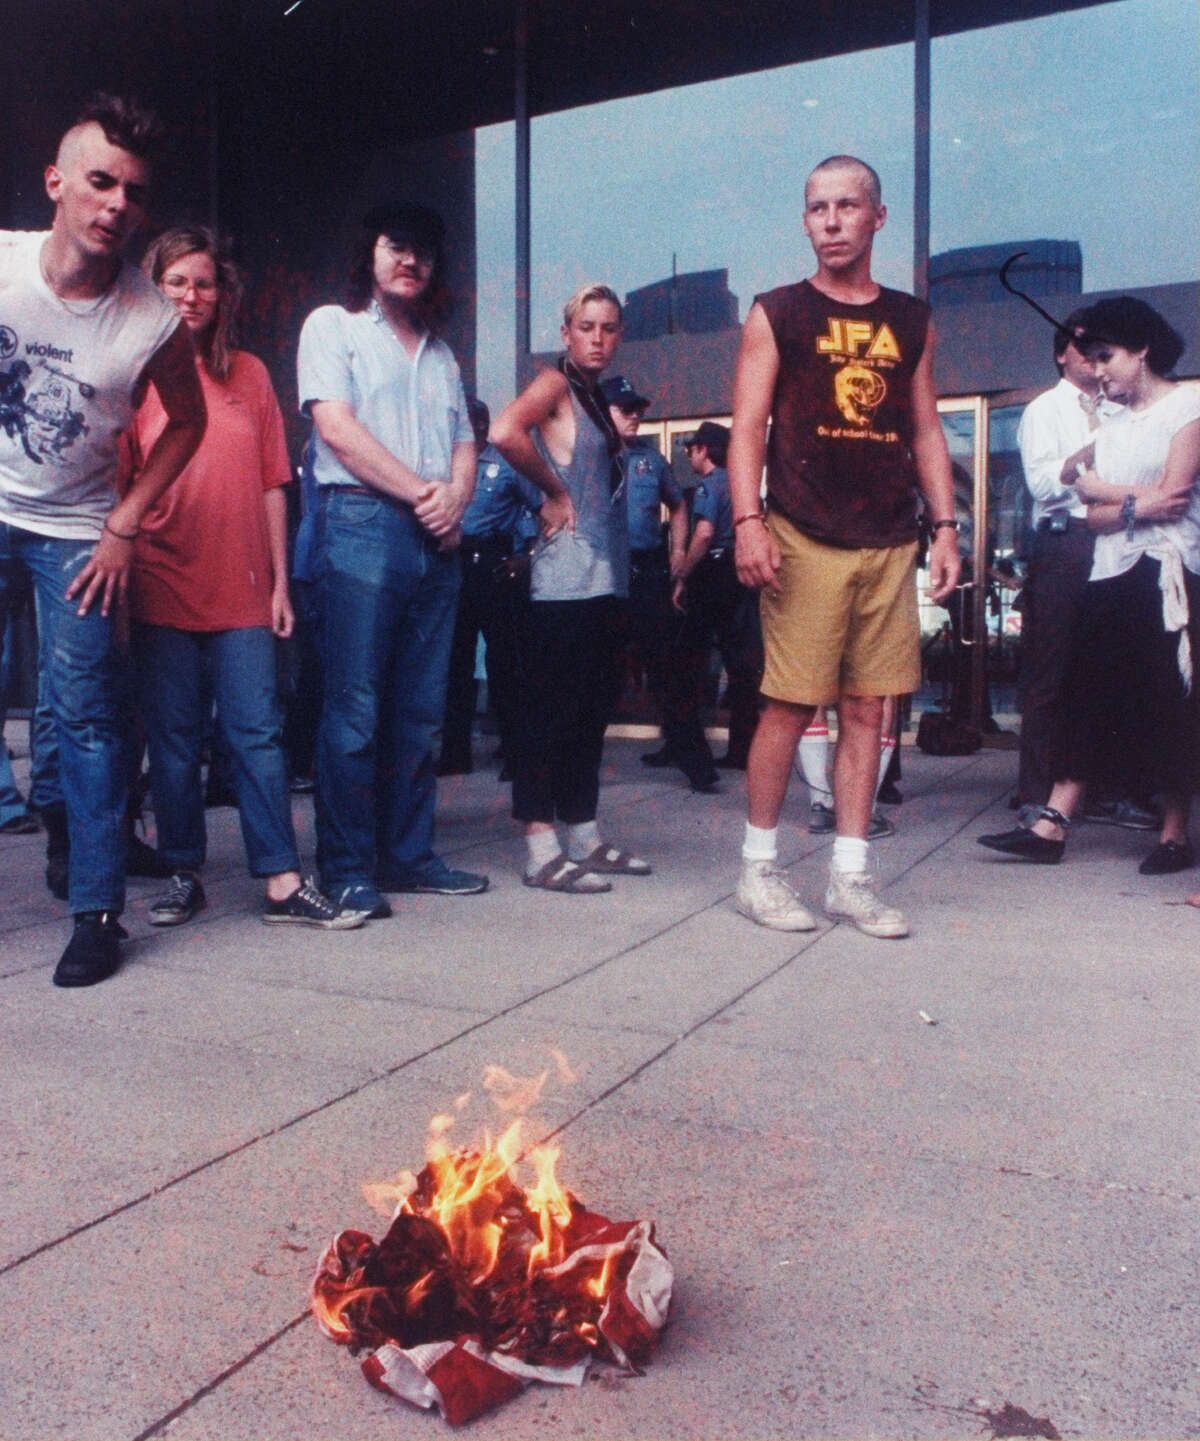 Demonstrators burn an American flag to express anger against Reagan policies during the Republican National Convention. Outspoken radical Gregory Johnson was detained by police during the demonstration, august 1984. (Photo by Image Works/Image Works/The LIFE Images Collection/Getty Images)